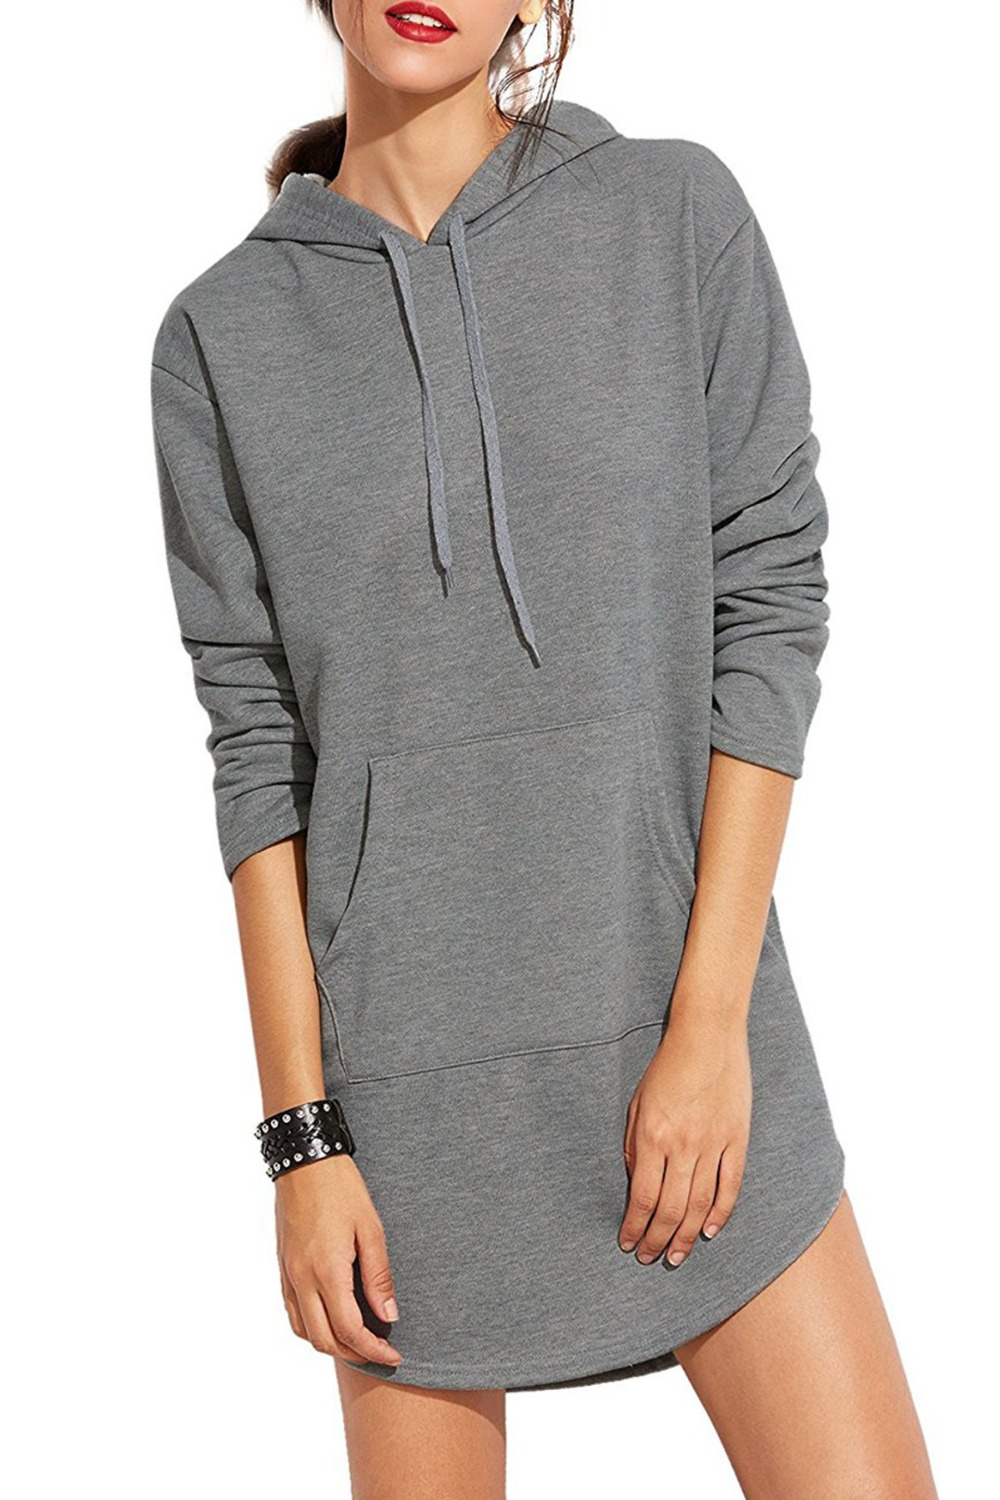 2018 New Design Hoodies Spring and Summer Long-sleeved Hooded Sweatshirts Polyester Slot Pocket Solid Sweatshirts for Female